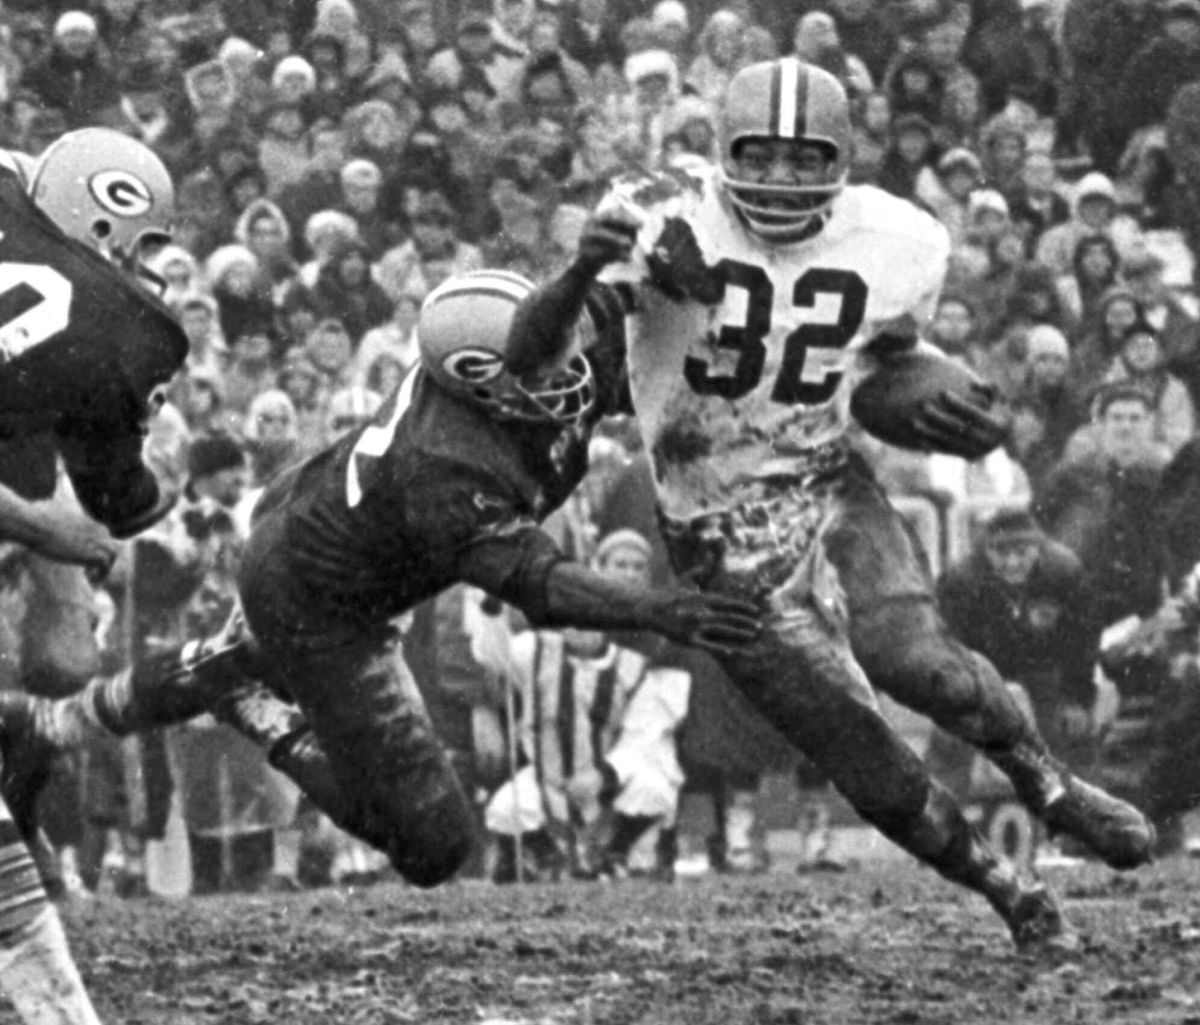 Jim Brown is the not only the greatest running back in Browns history, he's also the greatest running back in NFL history.